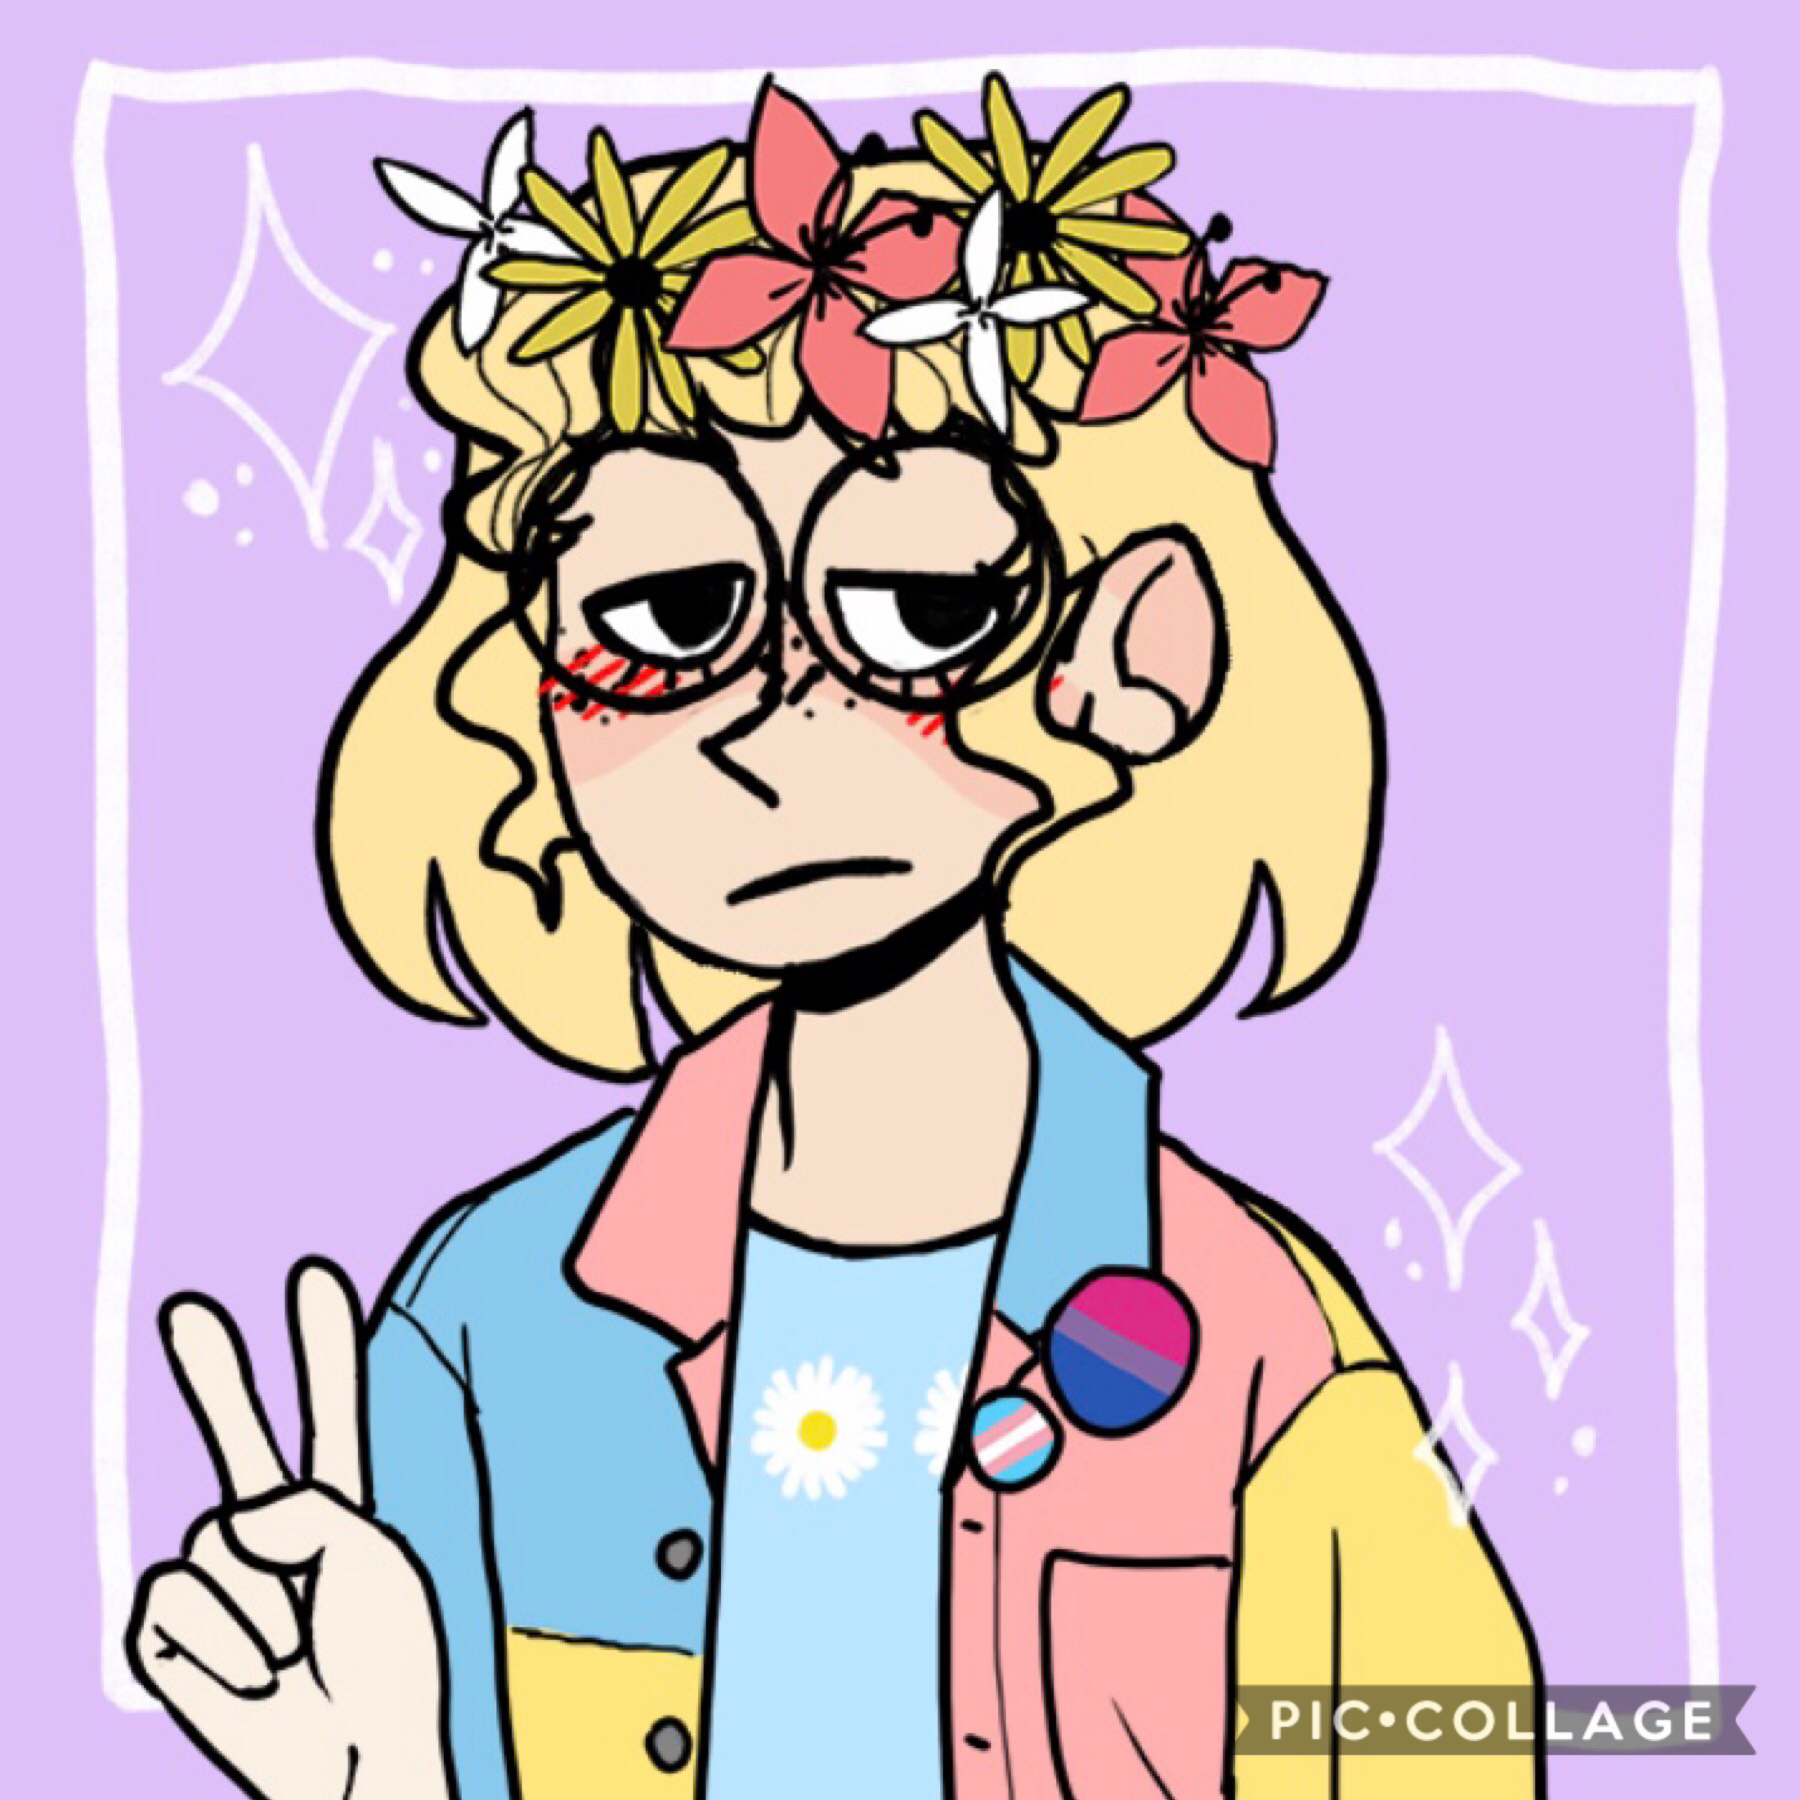 hopping on this new trend hehehsj credit to astratayne link in their bio (i'm not bi or trans but two of my best irl friends are so it's in support of them lol cuz it didn't have any of my flags)